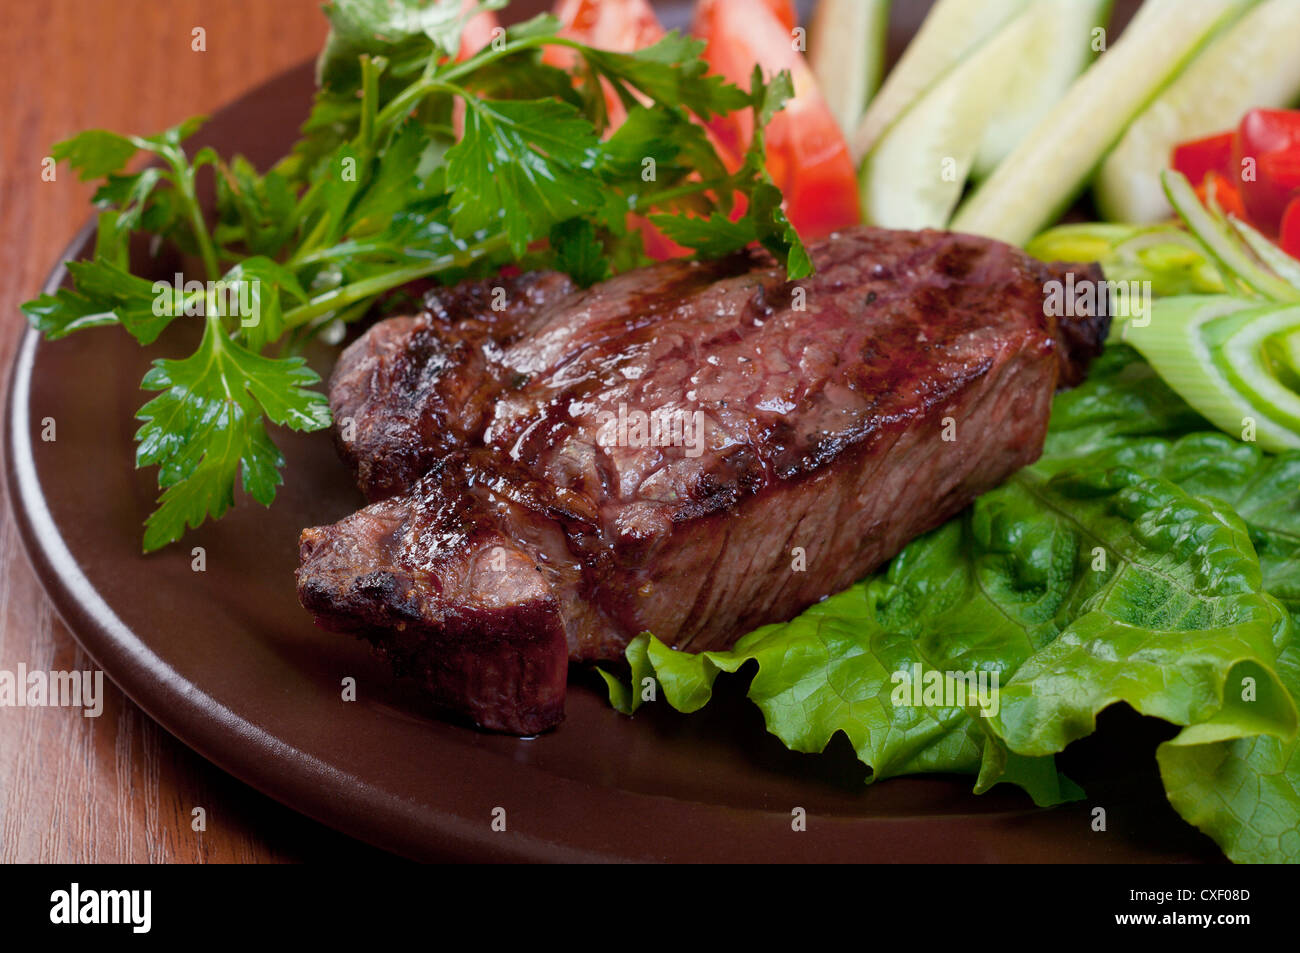 Grilled beef  - steak - Stock Image